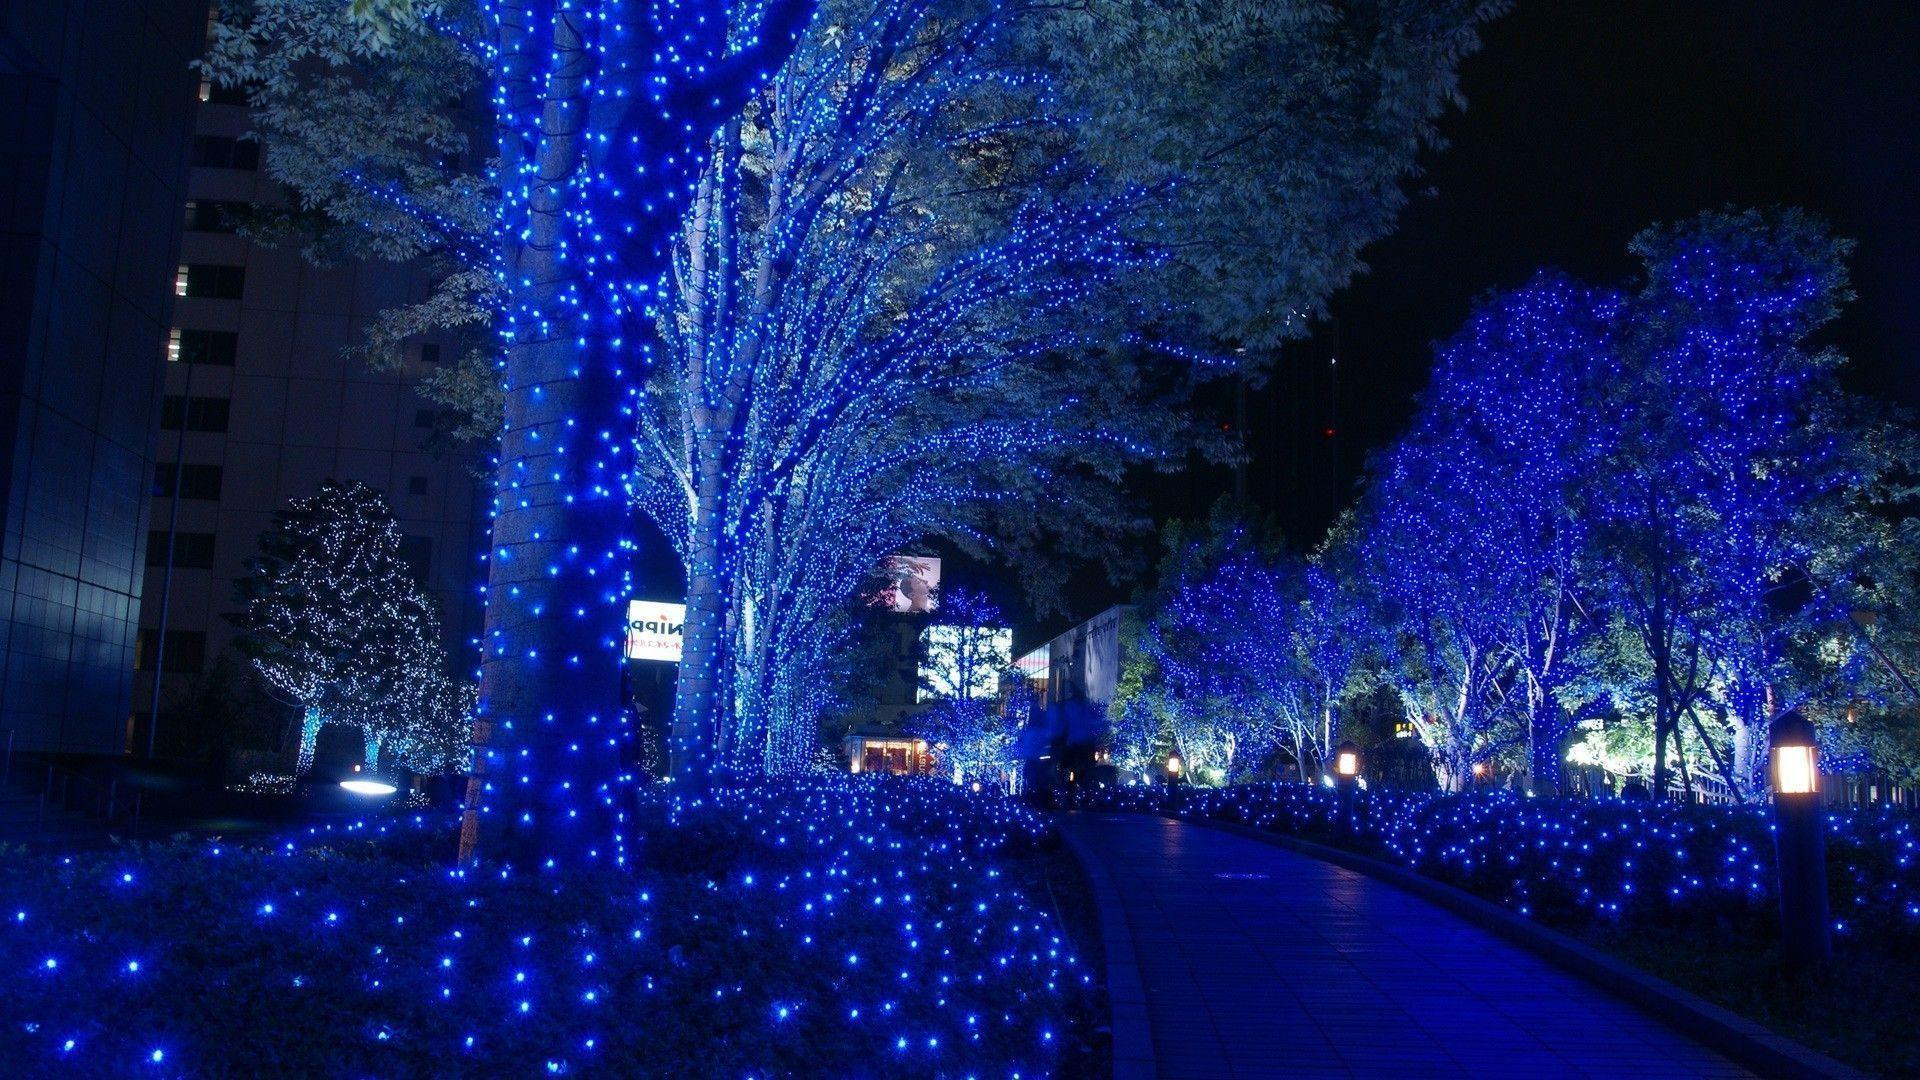 xmas stuff for blue christmas lights wallpaper